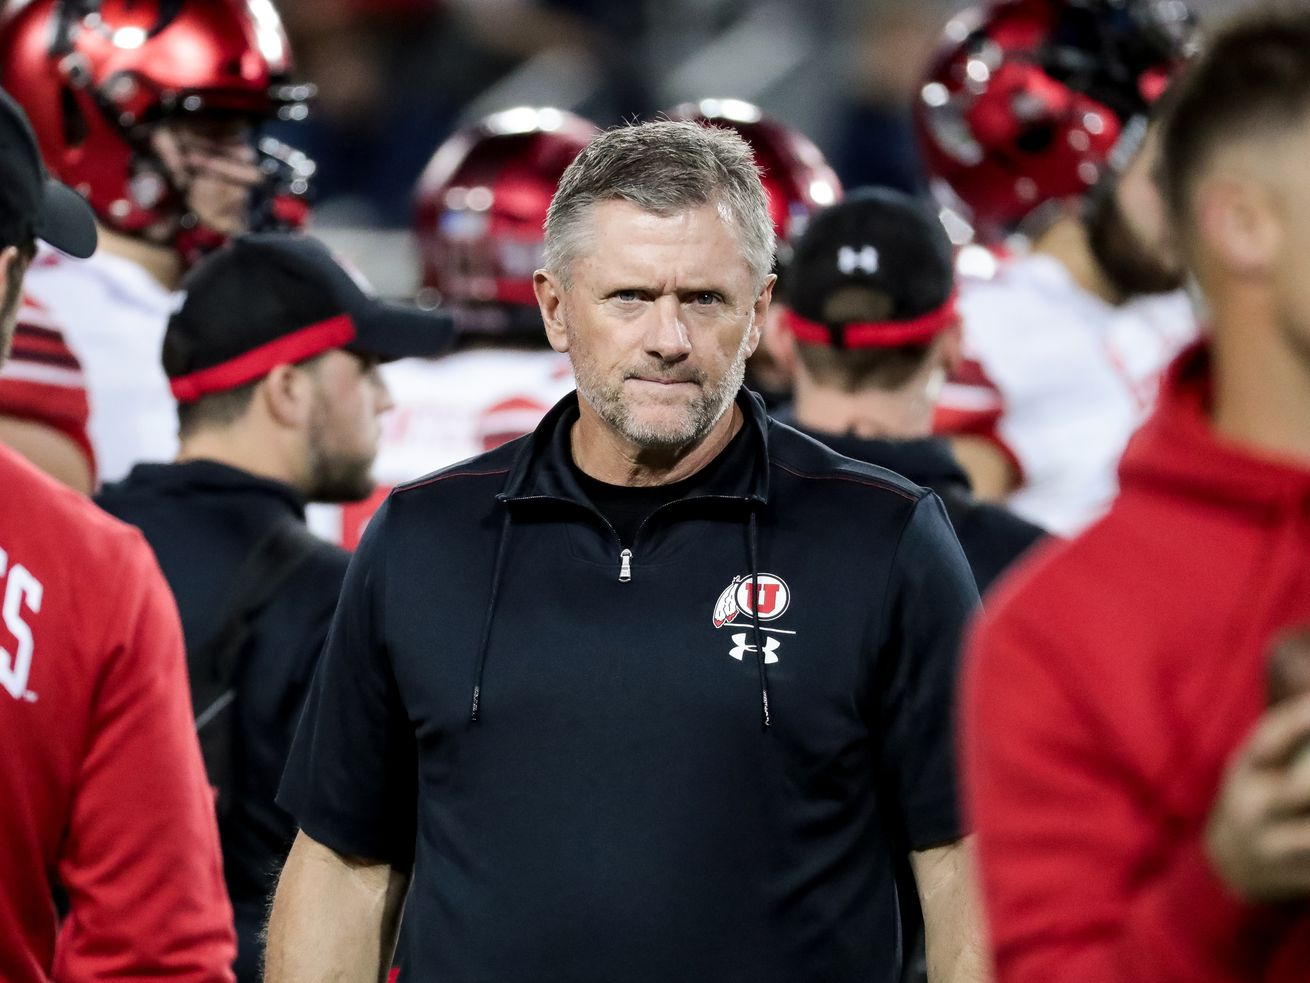 Utah Utes head coach Kyle Whittingham supervises the team as they warm up before the game against the Arizona Wildcats at Arizona Stadium in Tucson, Arizona on Saturday, Nov. 23, 2019.